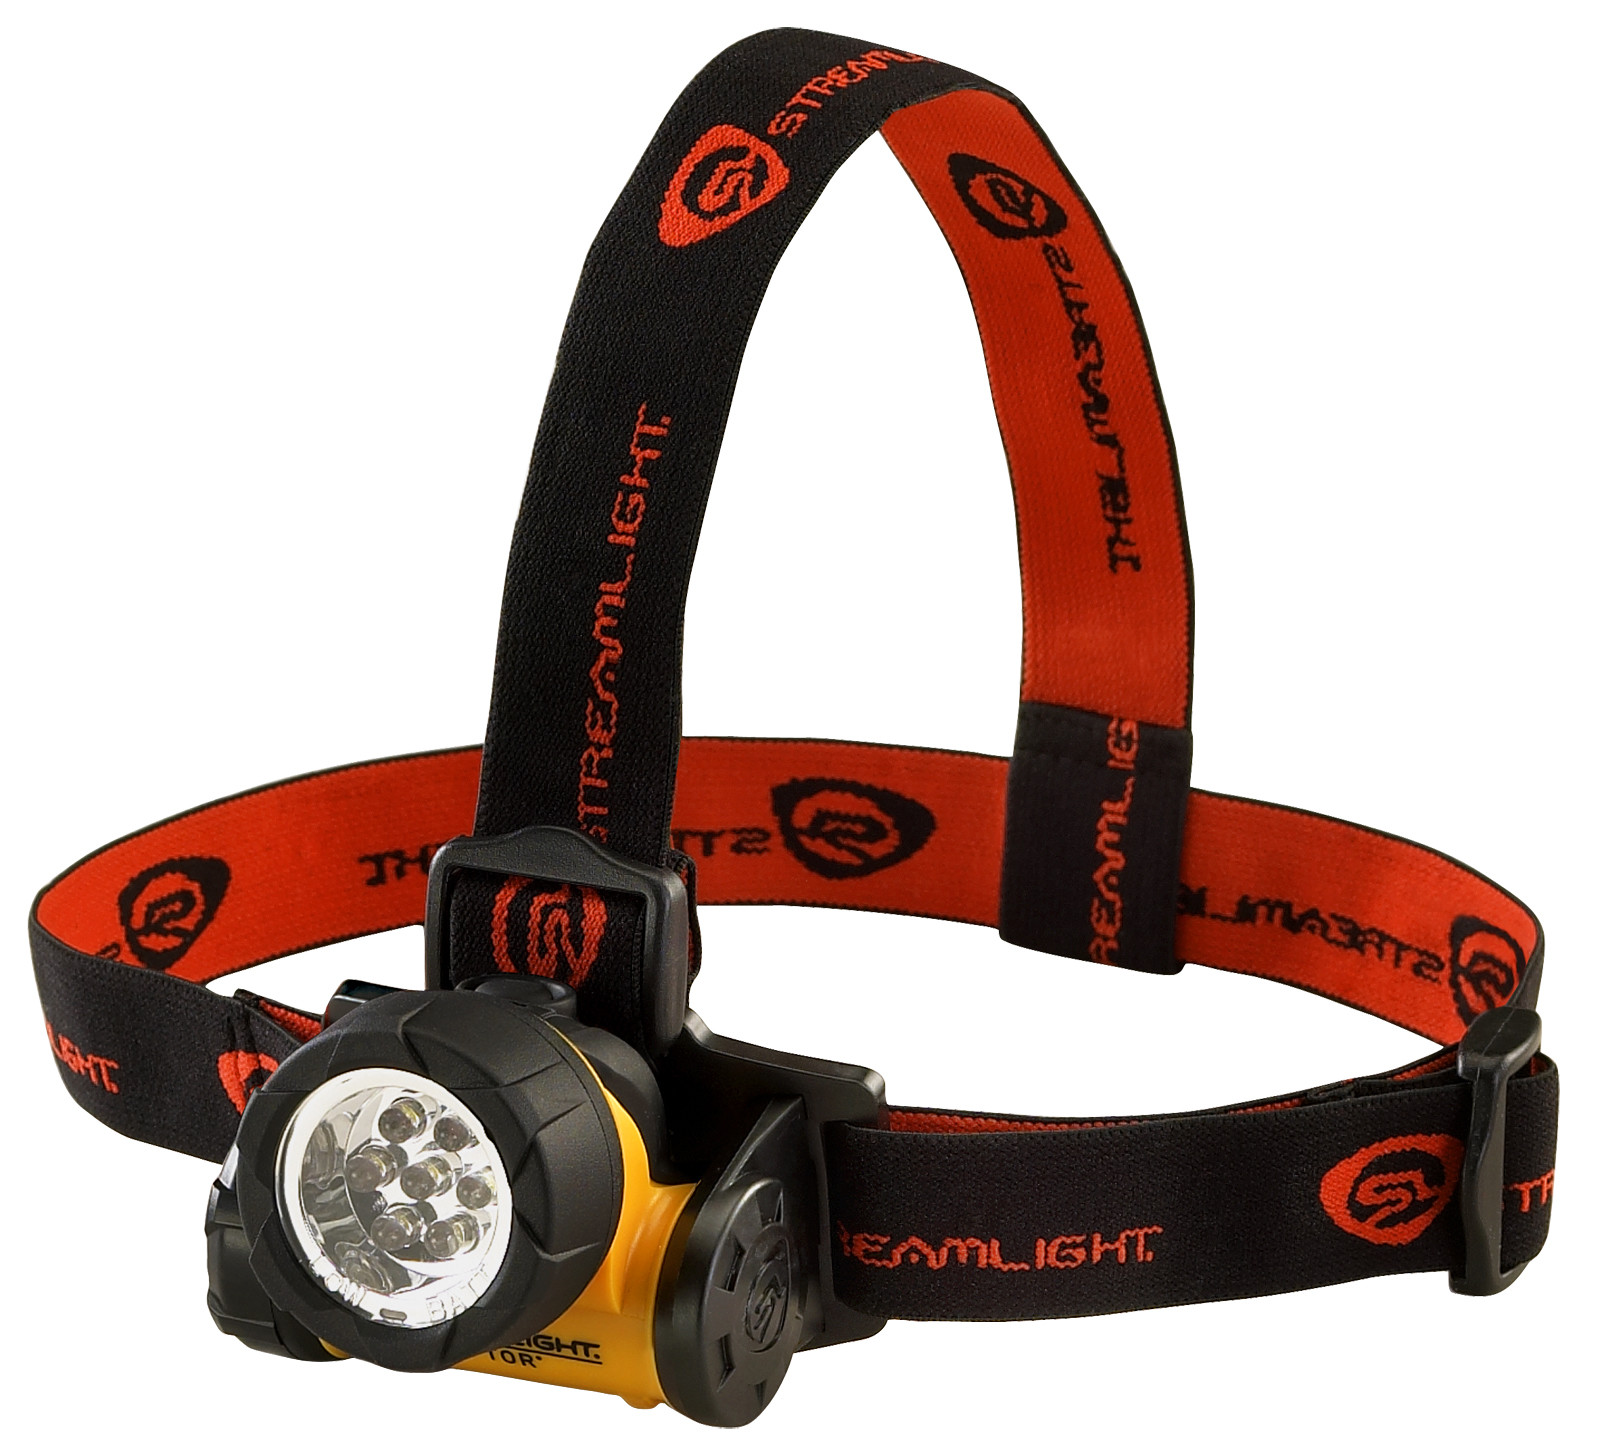 Streamlight Septor LED Div 2 Flood Headlamp, Yellow